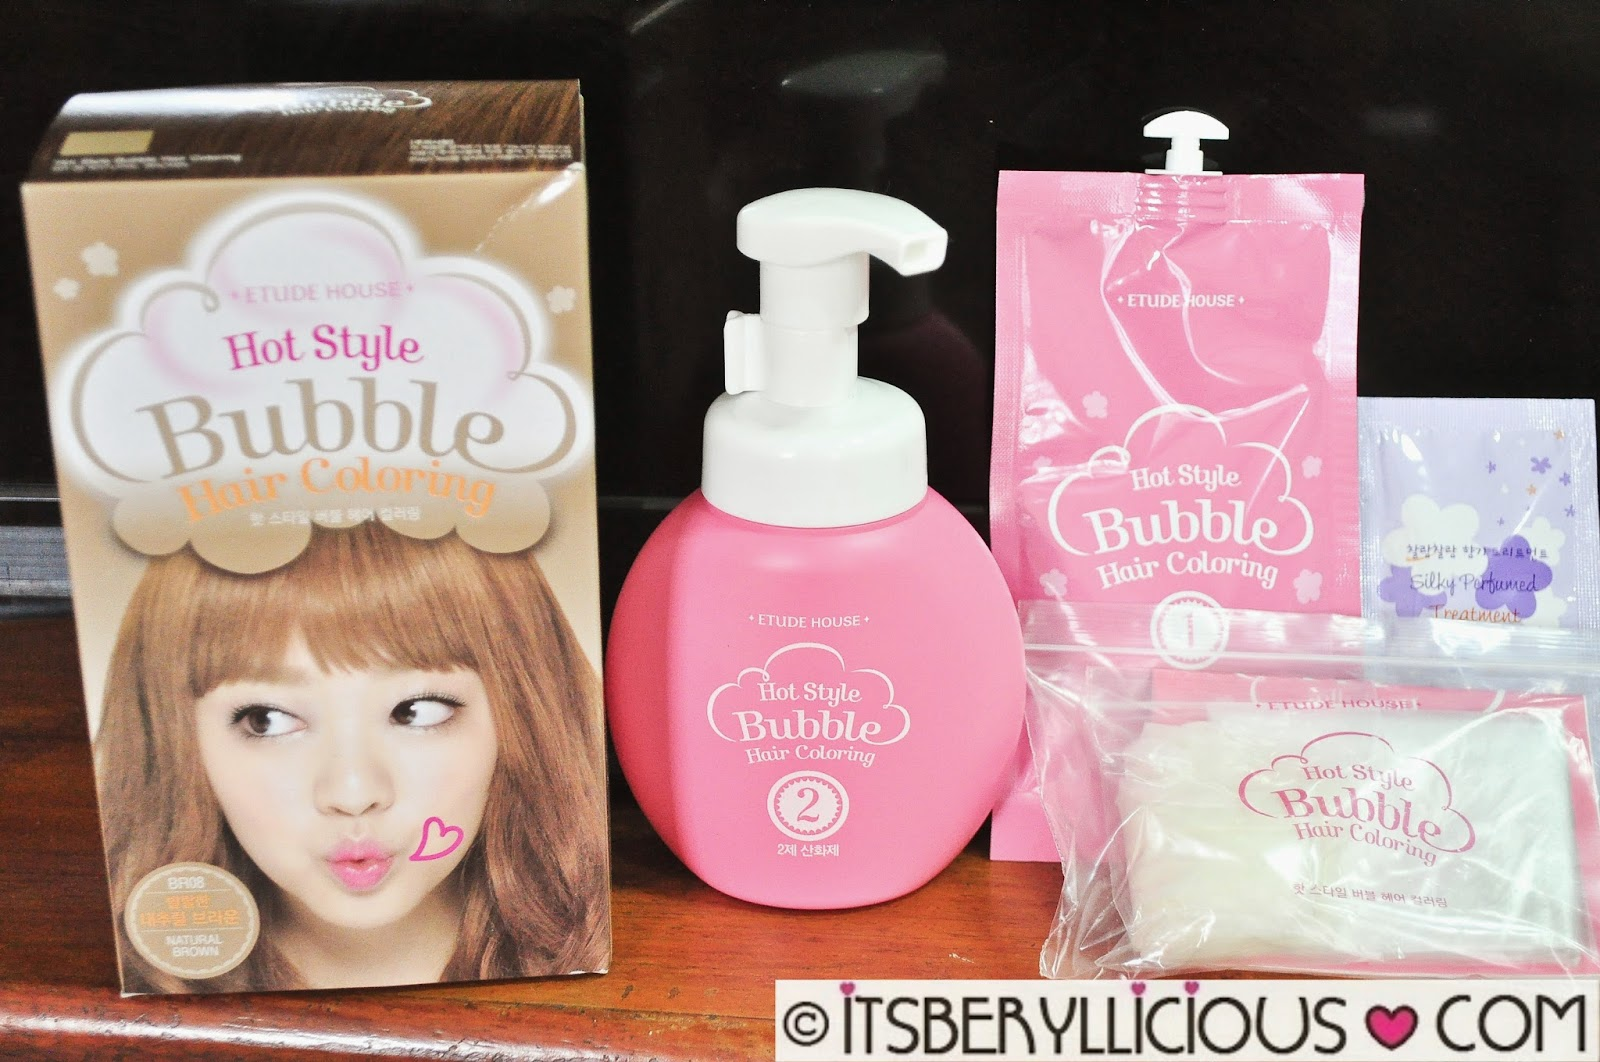 Etude House Hot Style Bubble Hair Coloring Shampoo In Natural Brown Beryllicious A Food Lifestyle And Travel Blog In The Philippines